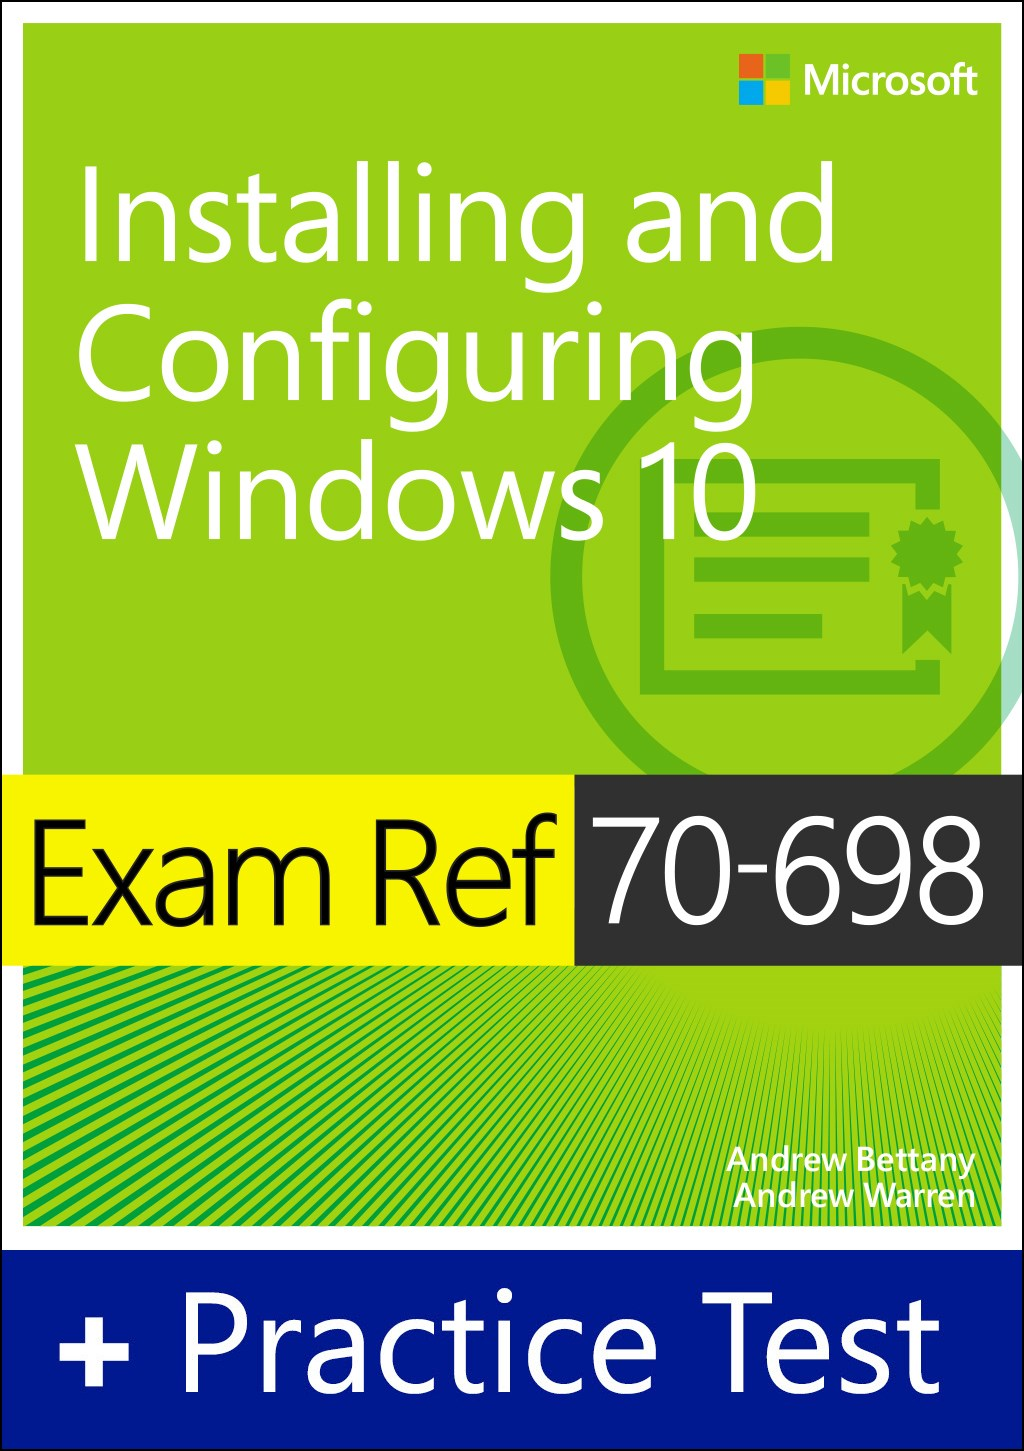 Exam Ref 70-698 Installing and Configuring Windows 10 with Practice Test